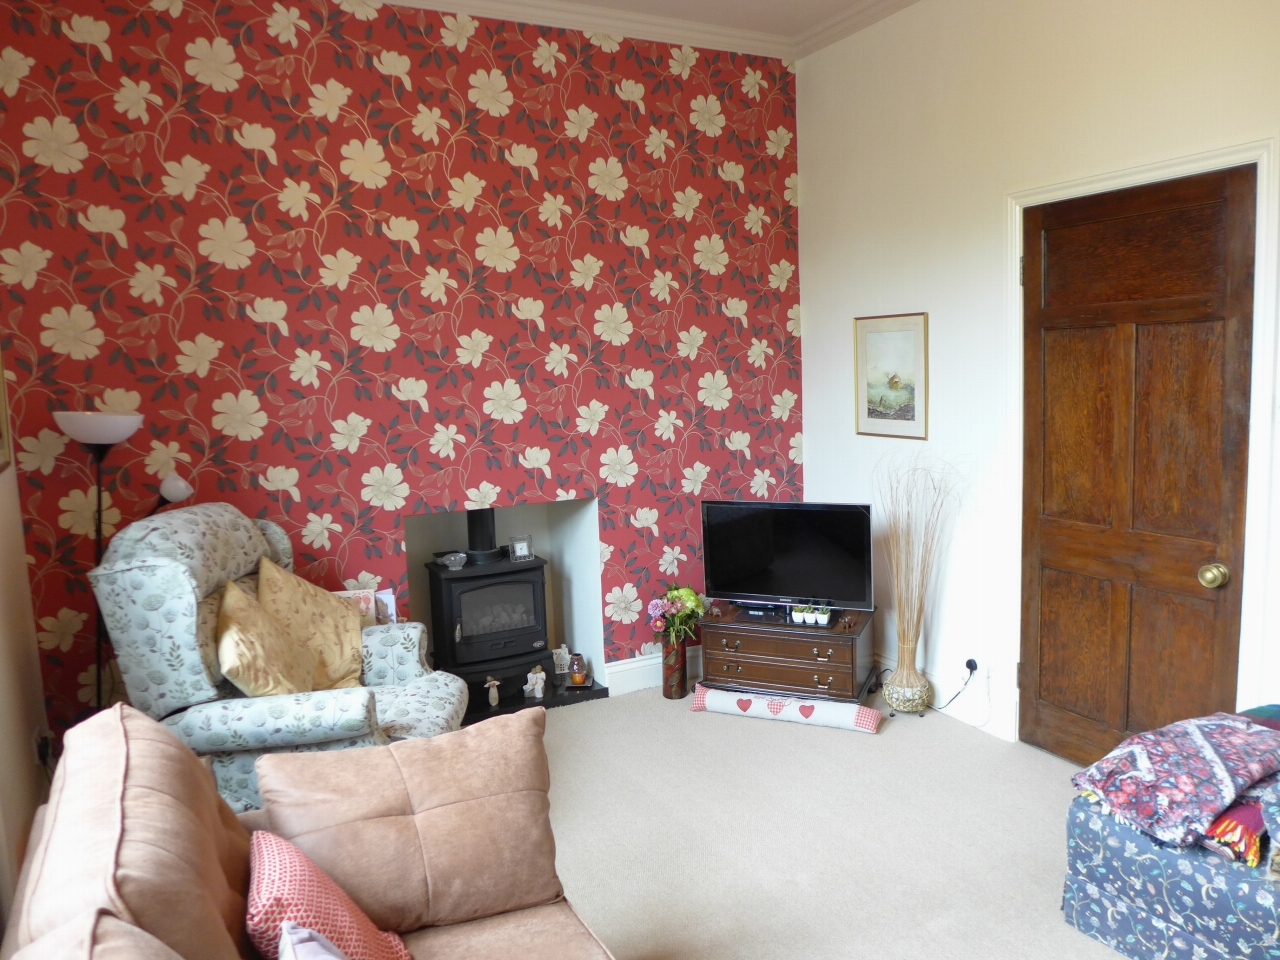 3 bedroom end terraced house For Sale in Calderdale - Photograph 4.